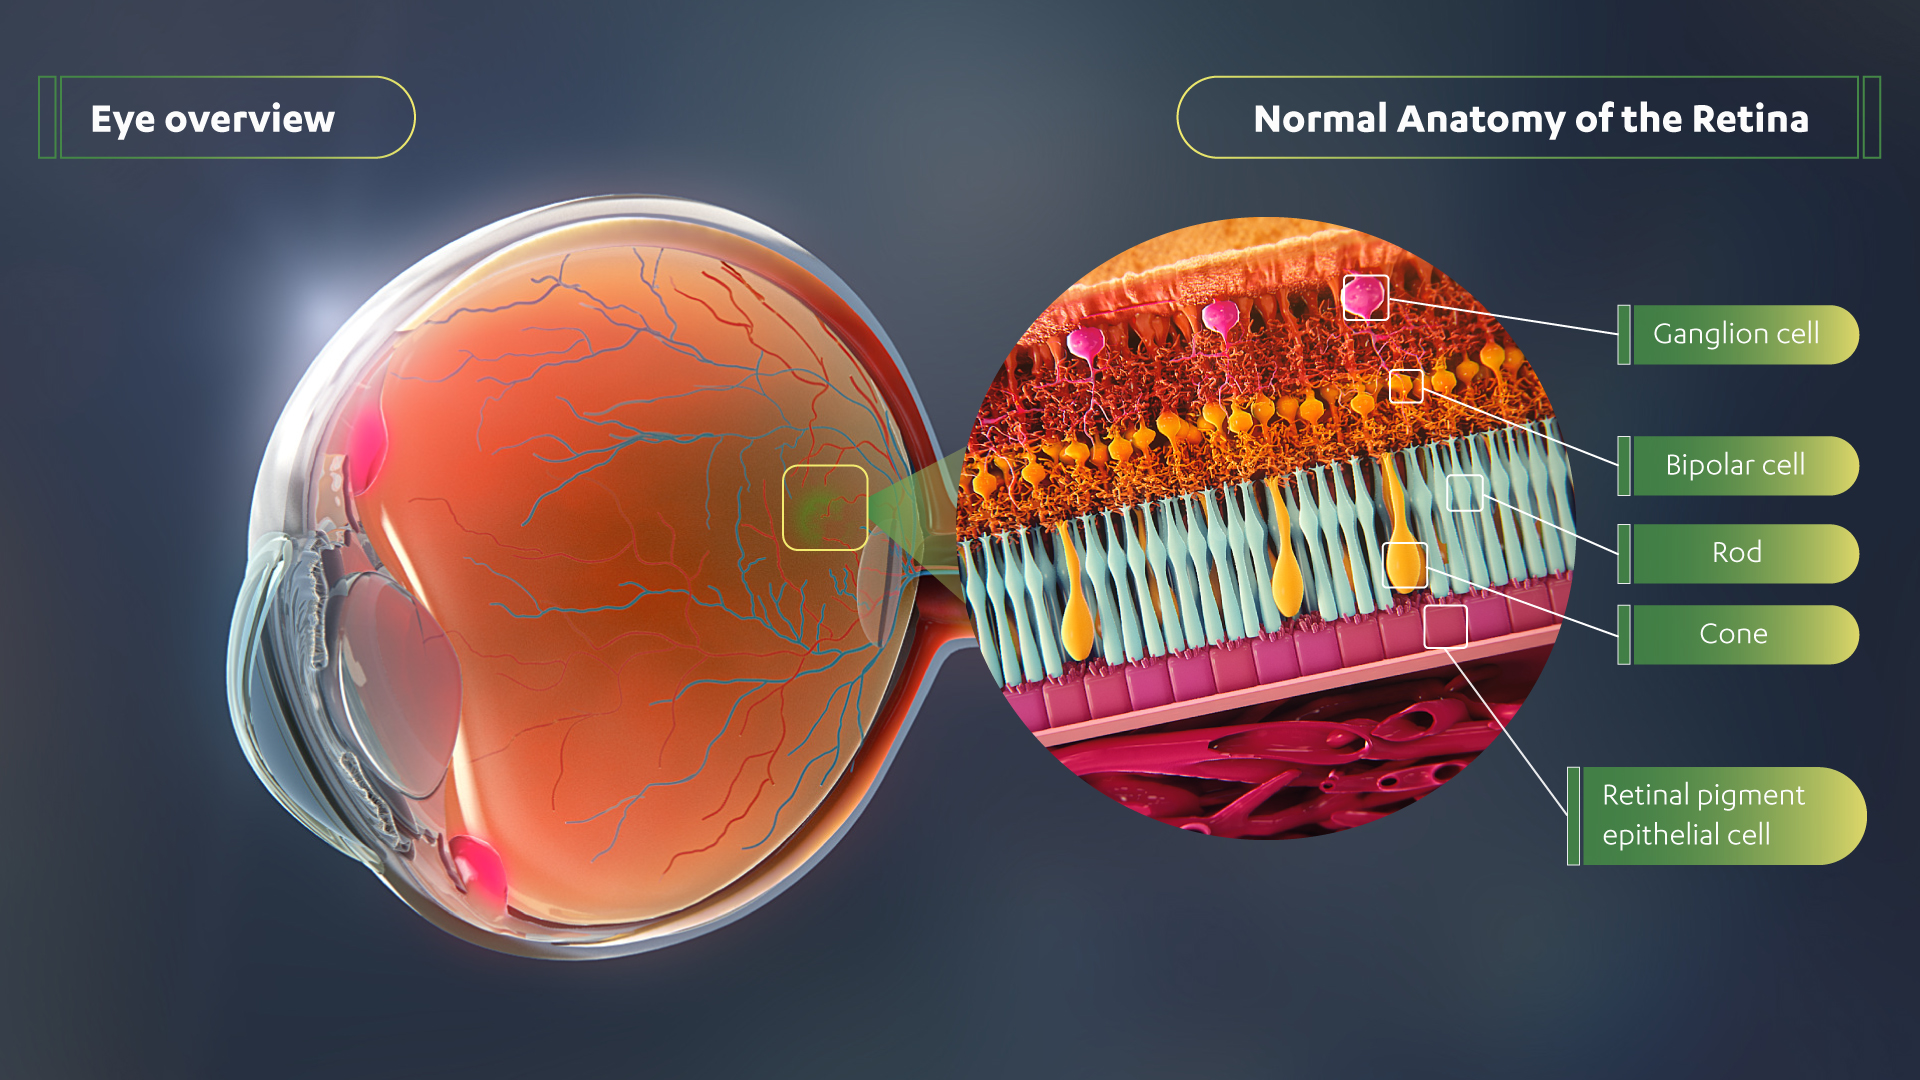 Eye Retina Overview